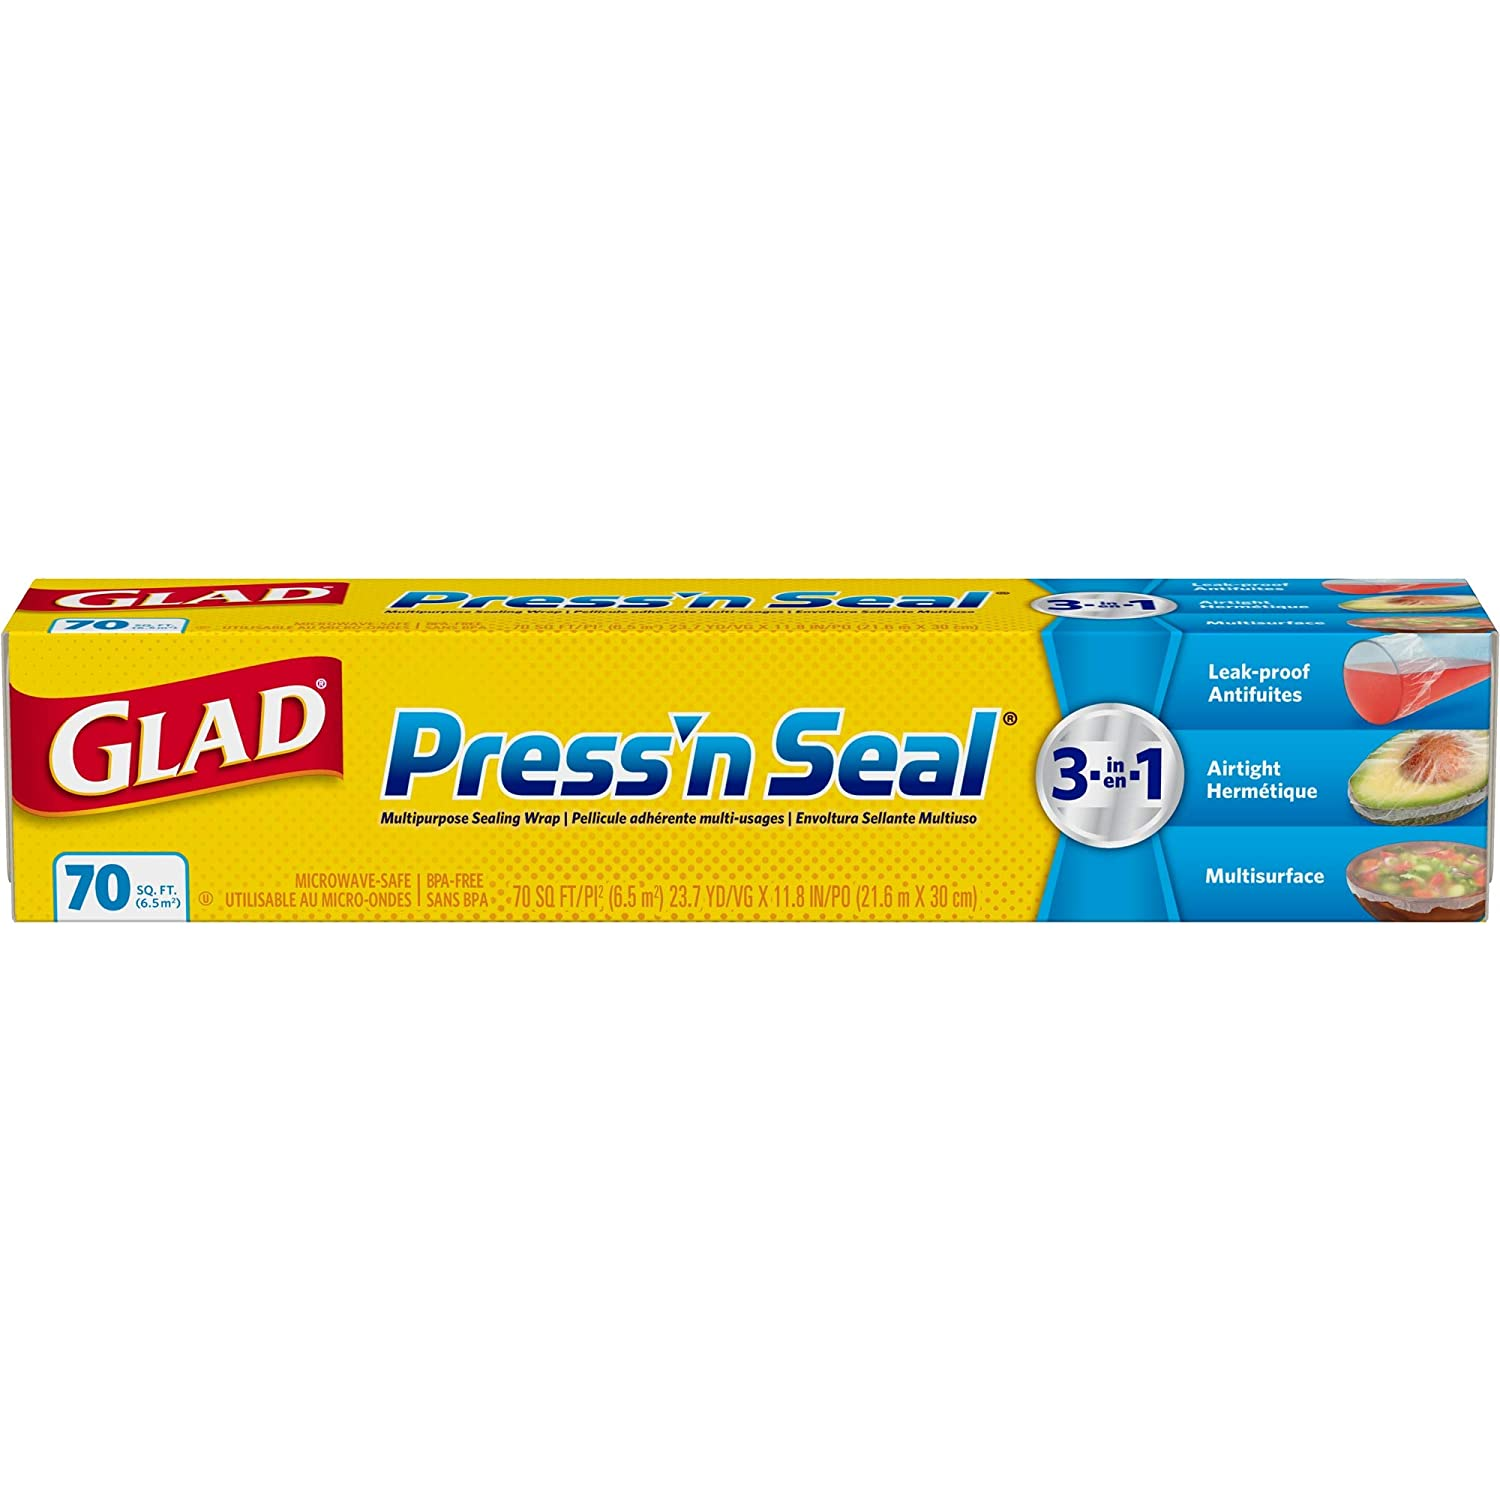 Glad Press'n Seal Food Plastic Wrap - 70 Square Foot Roll, 12 Rolls/Case (70441)